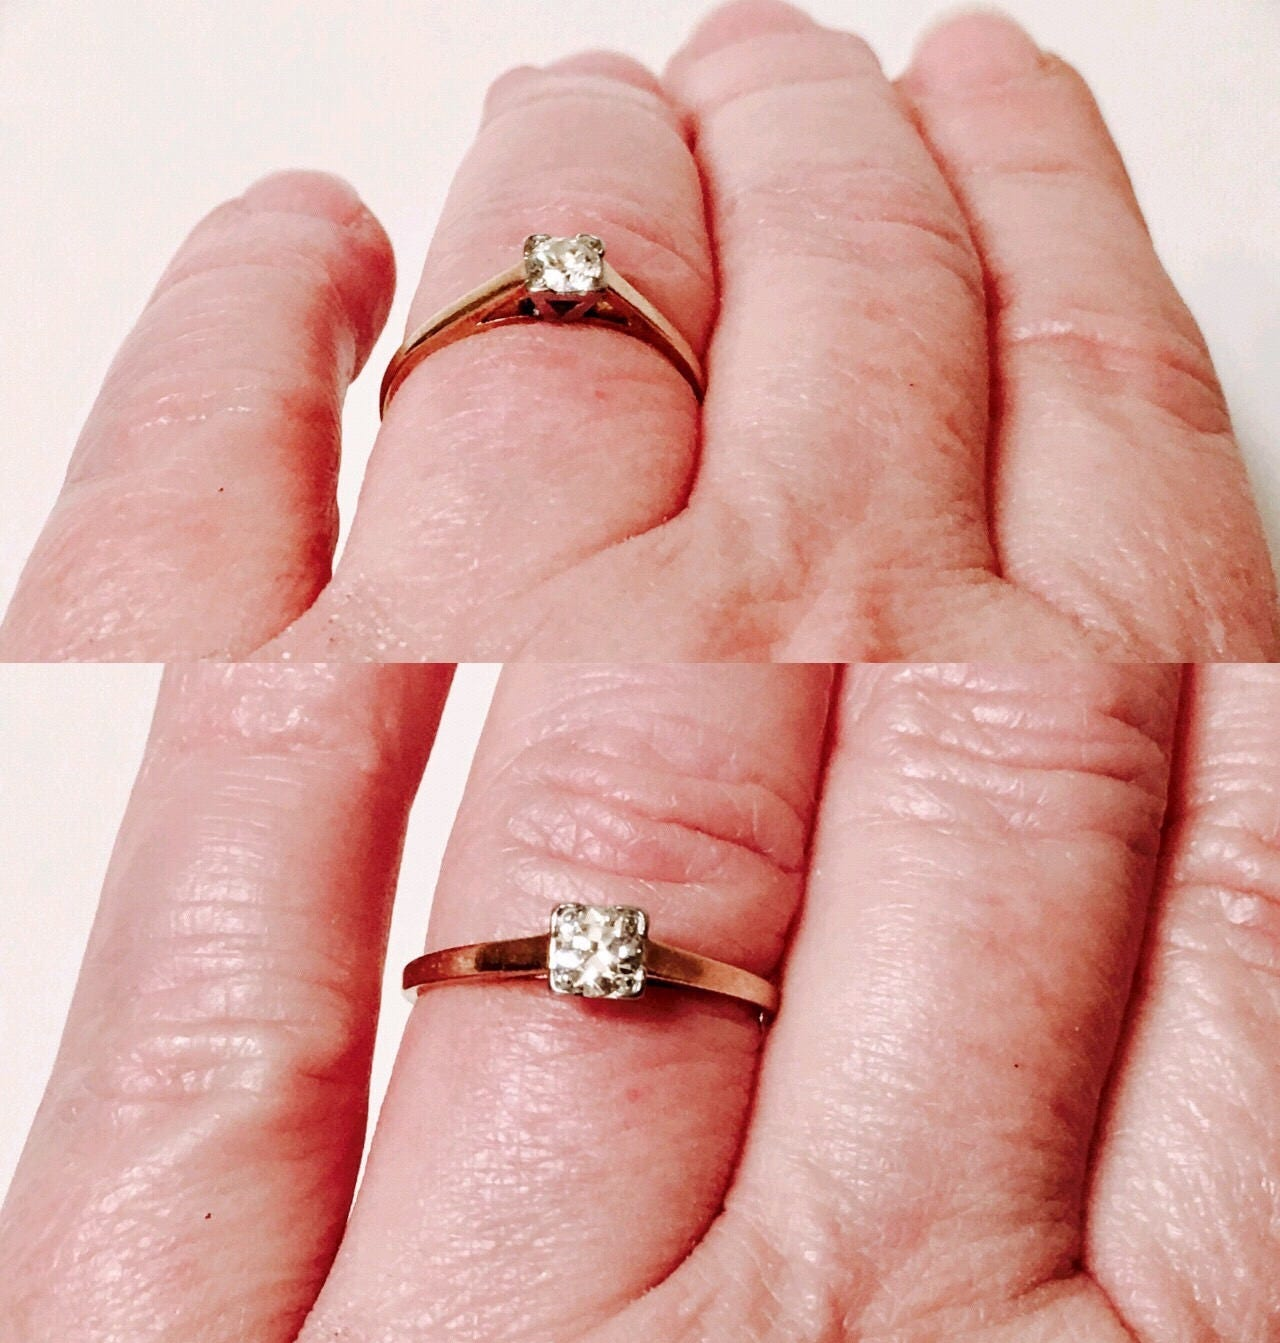 Vintage 585 14k Gold Diamond Solitaire Engagement Ring Free US Shipping